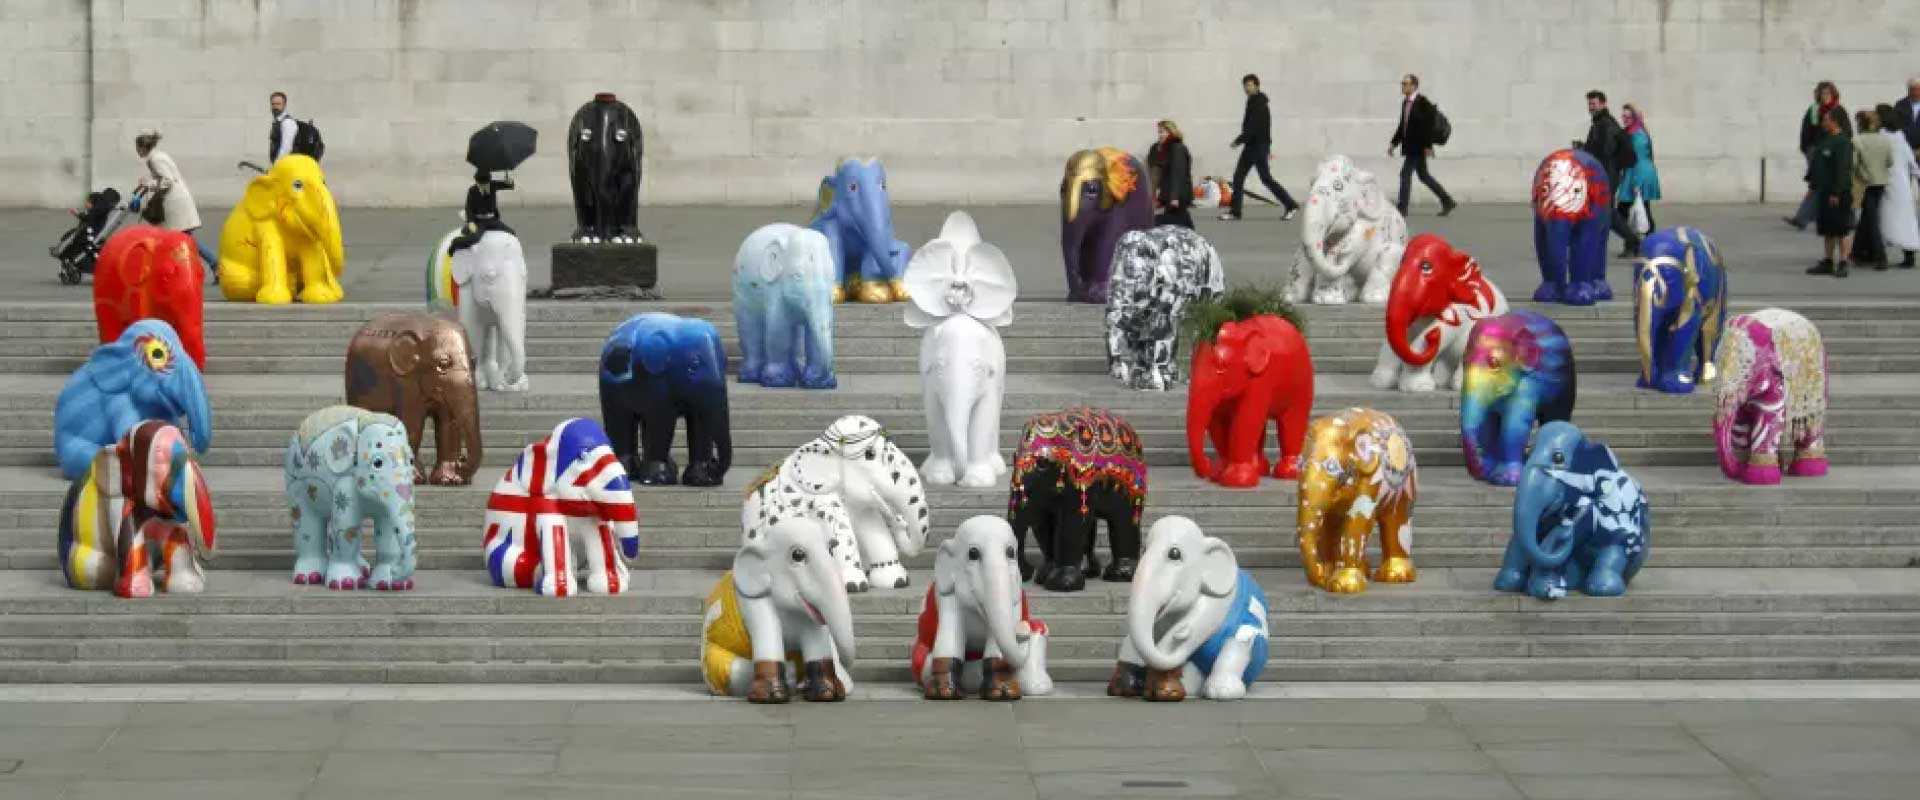 Elephant Parade in London